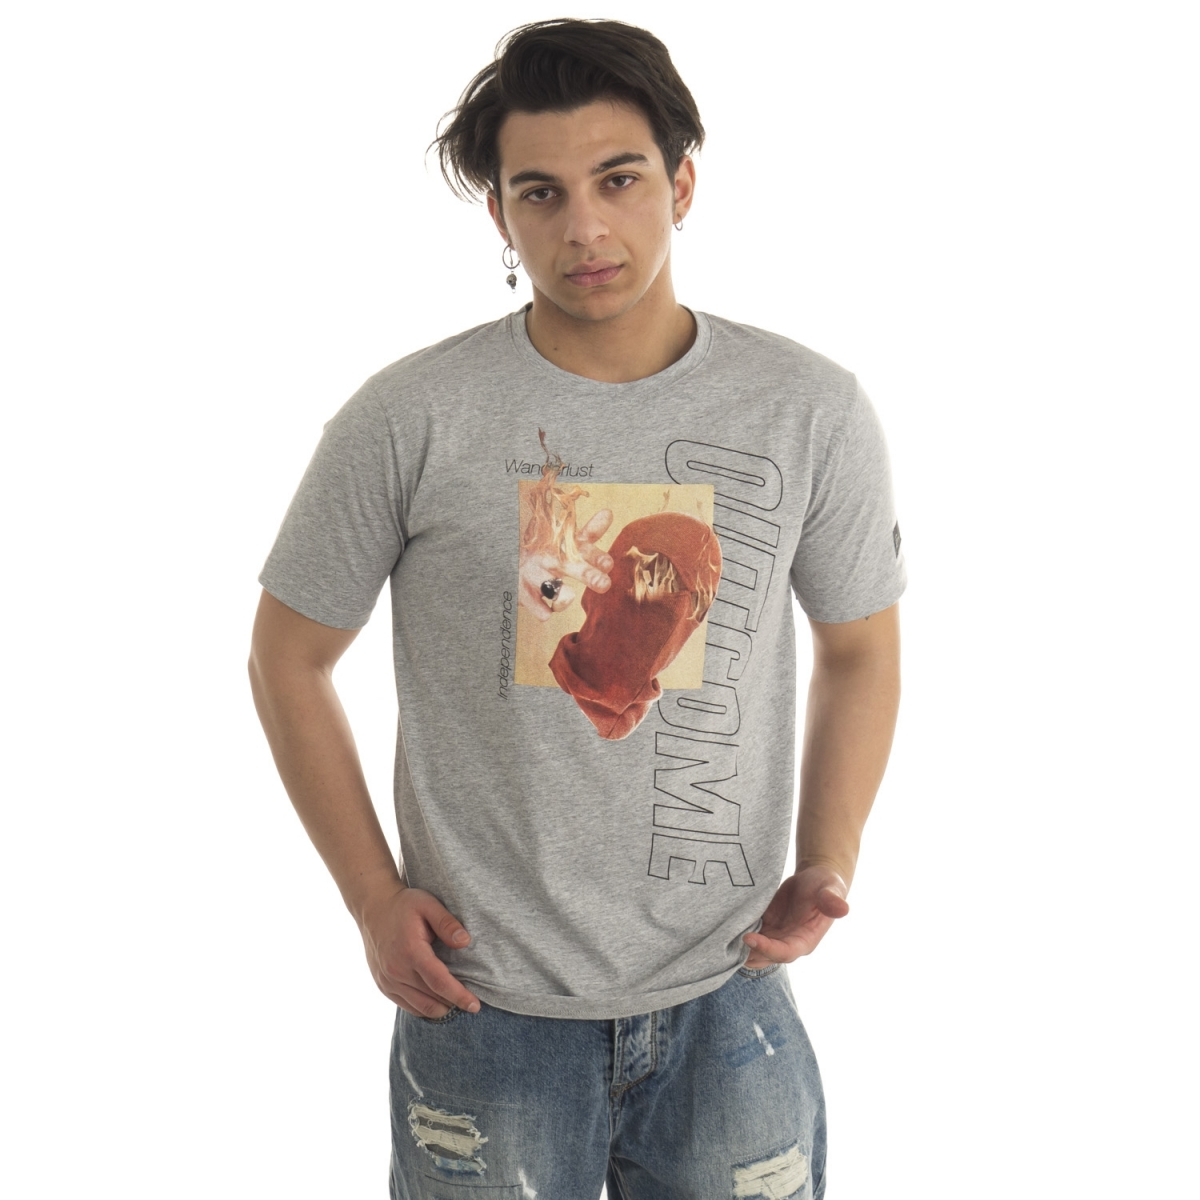 clothing T-shirt men T-Shirt GLUG70631 GIANNI LUPO Cafedelmar Shop